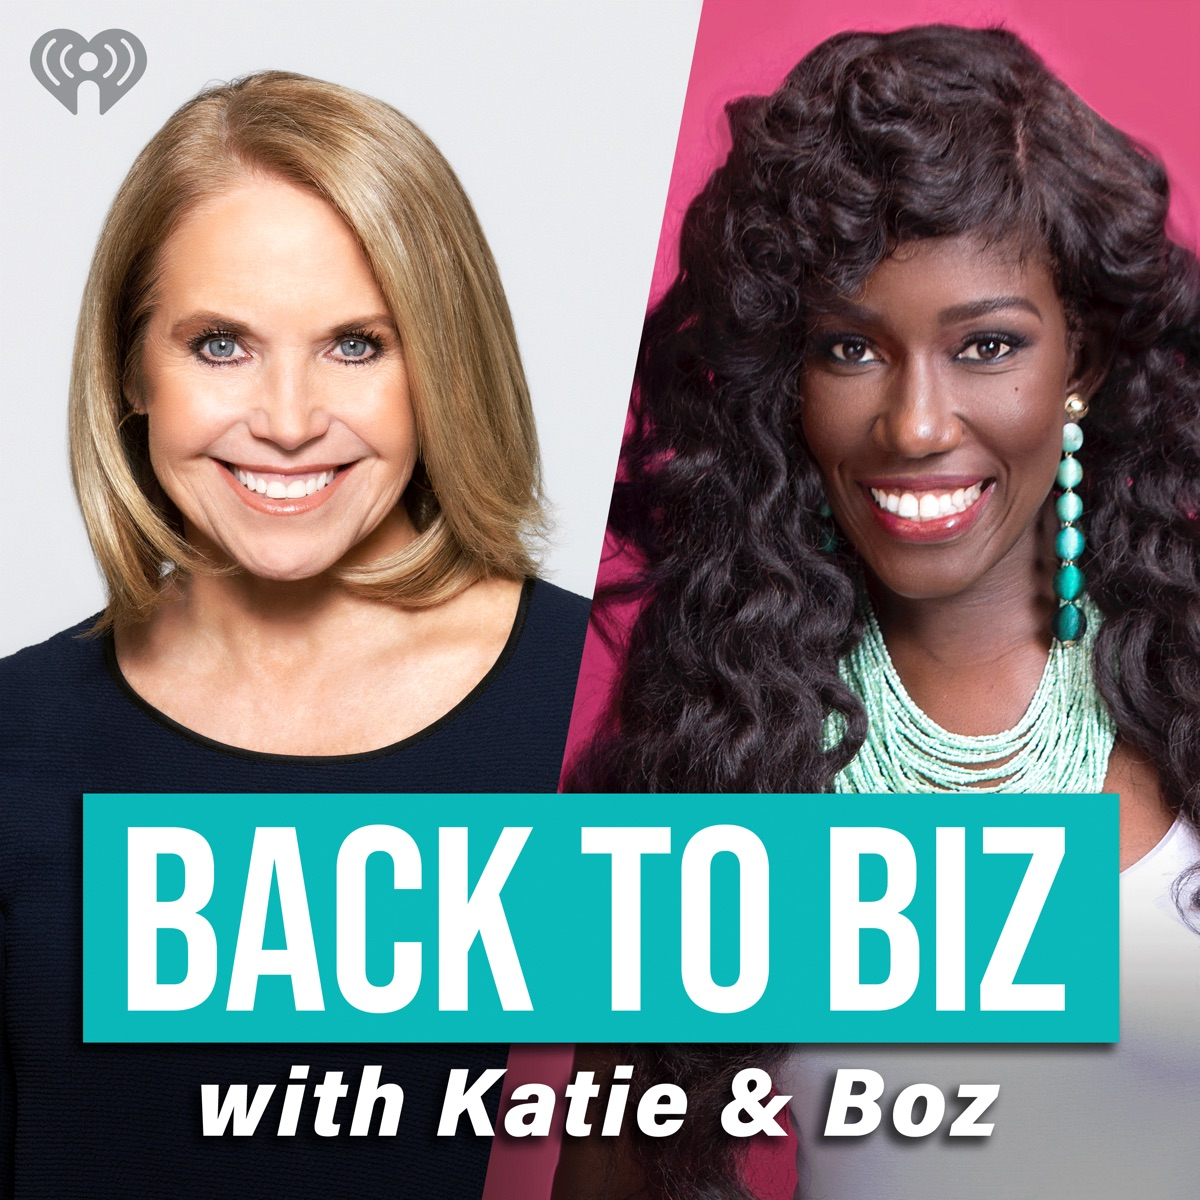 Introducing Back to Biz with Katie and Boz